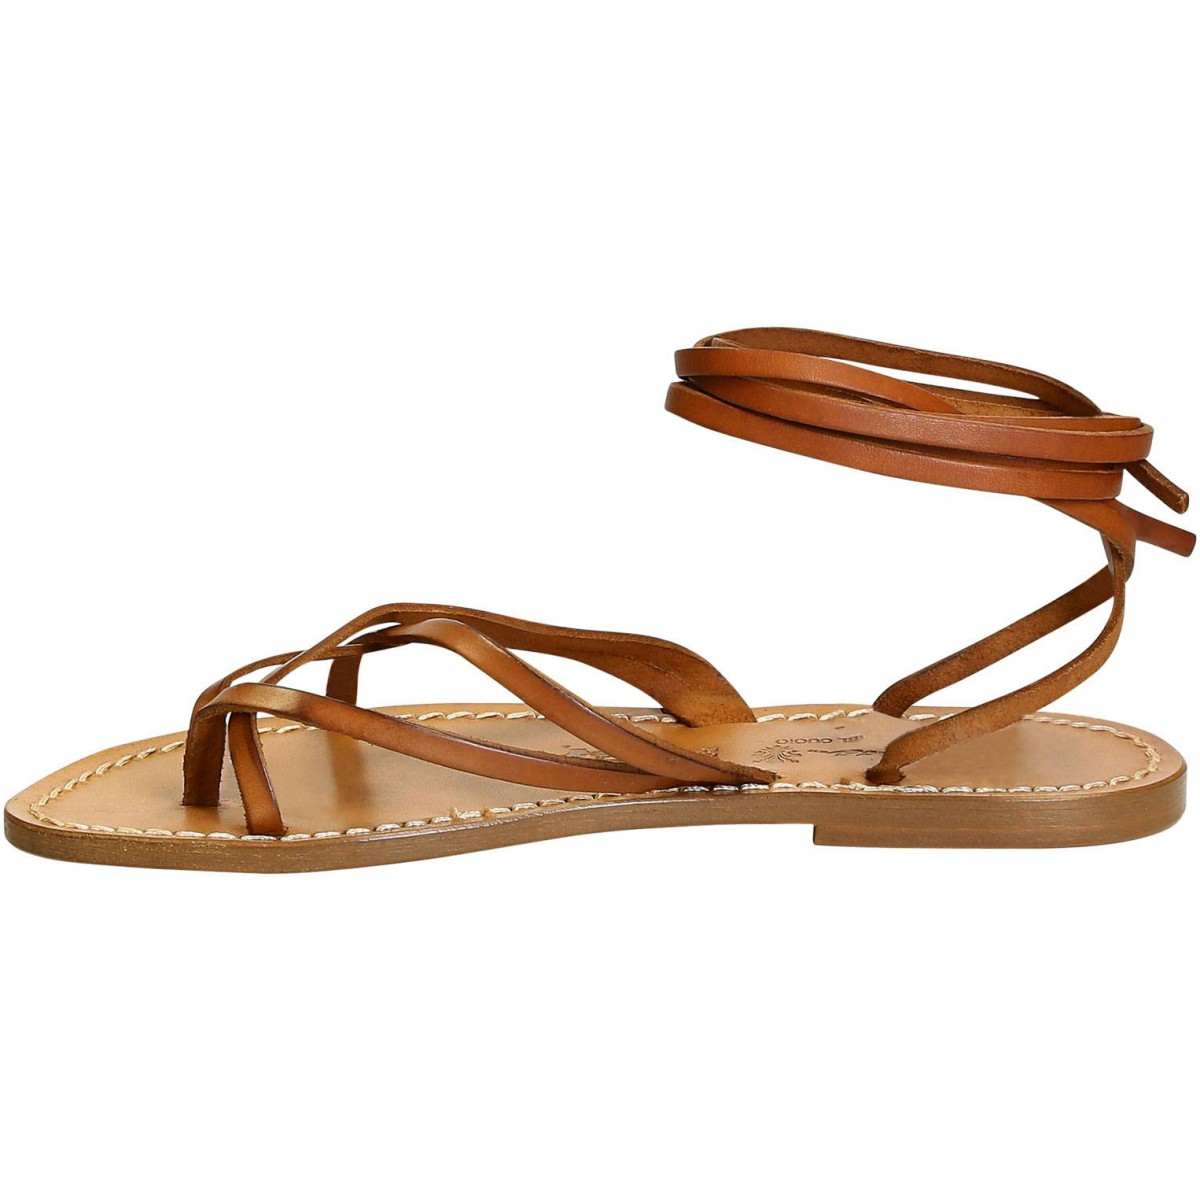 c3f35c5b1bec Loading zoom · Women s vintage cuir strappy leather sandals handmade in  Italy. Previous. Next